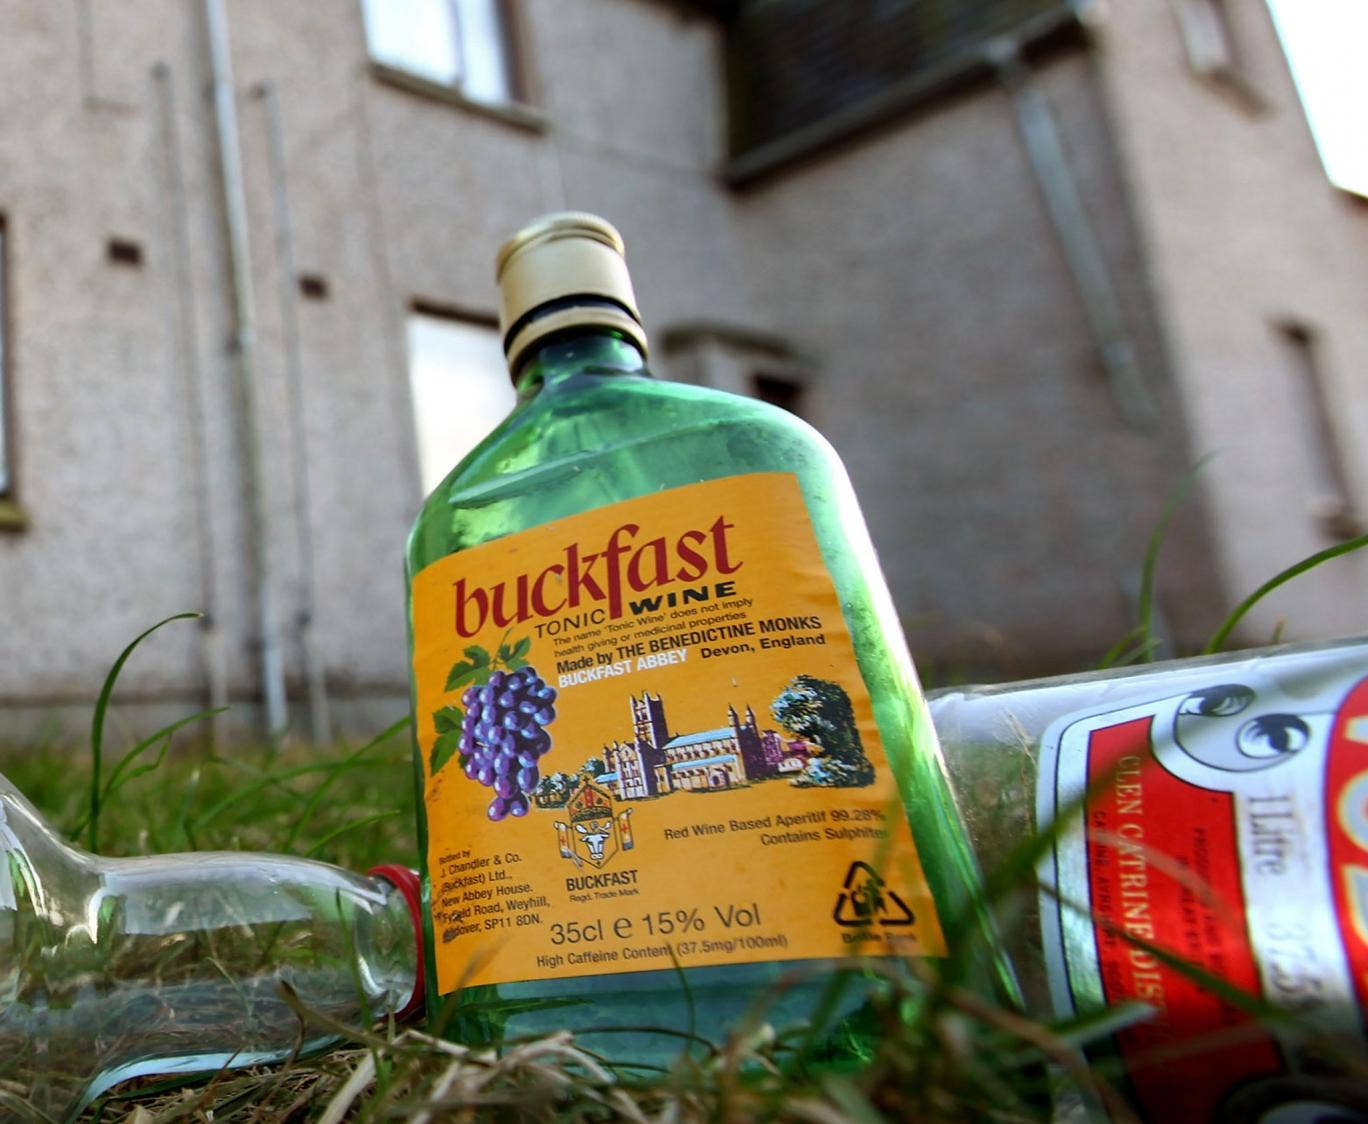 Buckfast contains 12 per cent alcohol and high levels of caffeine